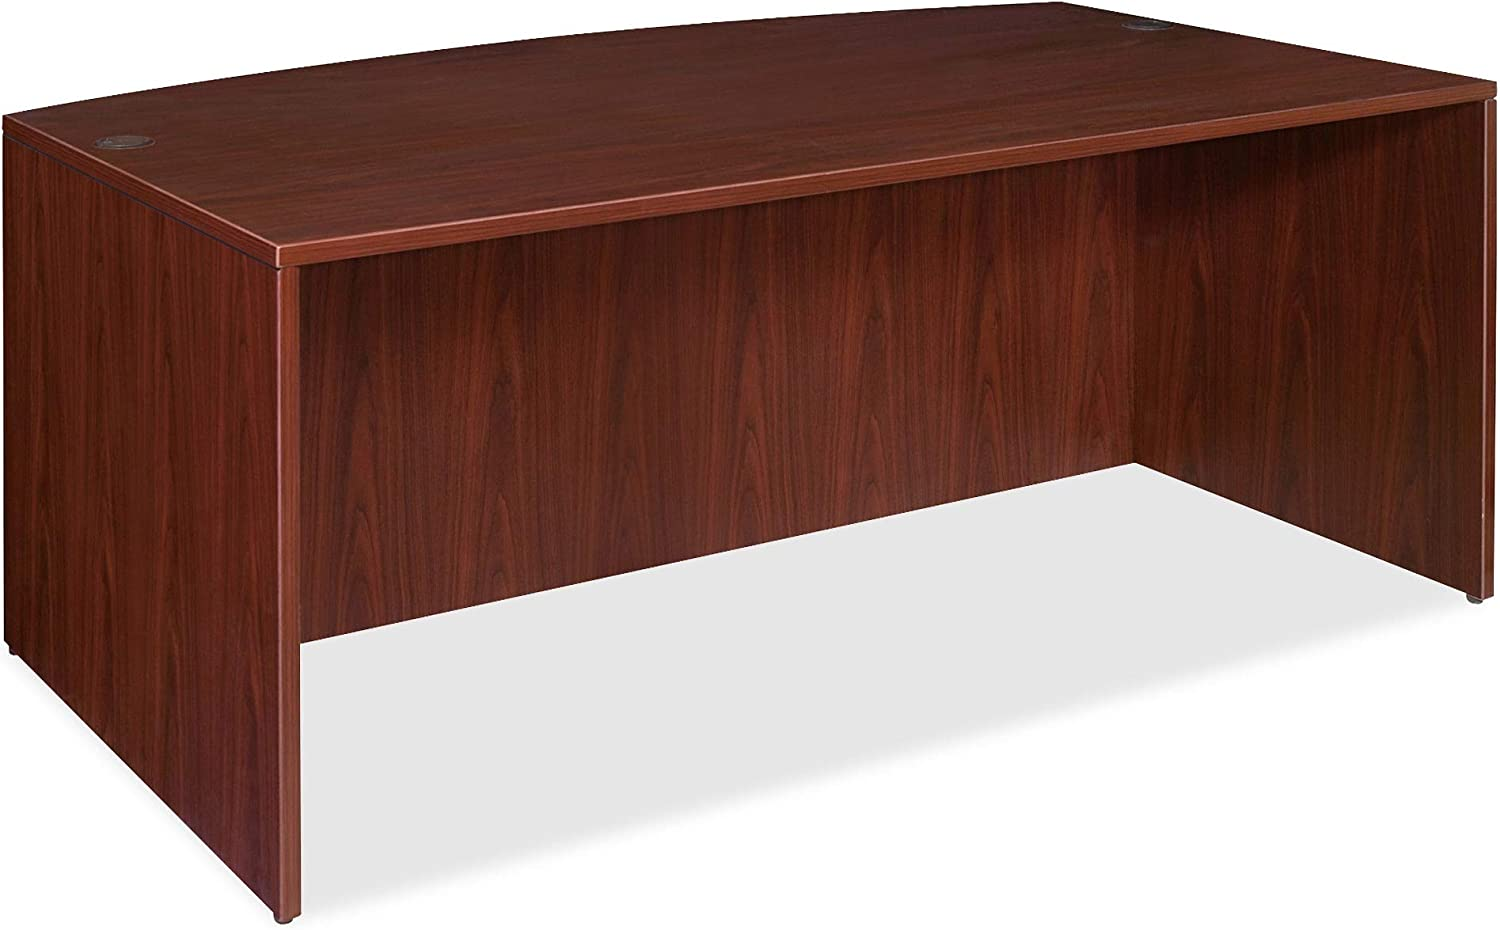 Lorell Bow Front Desk Shell Limited time for free shipping 72 by 2-Inch All items in the store Mahogany 29-1 36